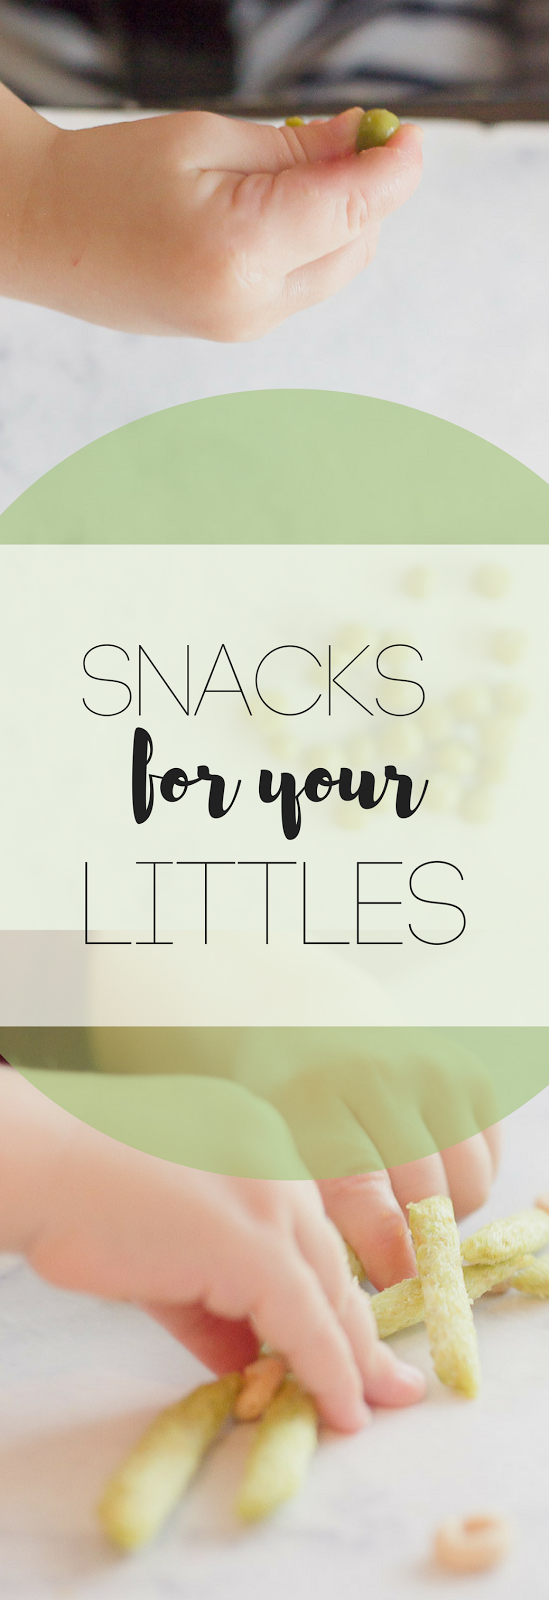 Healthy snacks for your kids. healthy kids, healthy snacks, snacks for lunches, lunch snacks, quick snacks, yogurt for baby, dairy snacks, veggie snacks, fruit snacks, back to school snacks, new year snacks